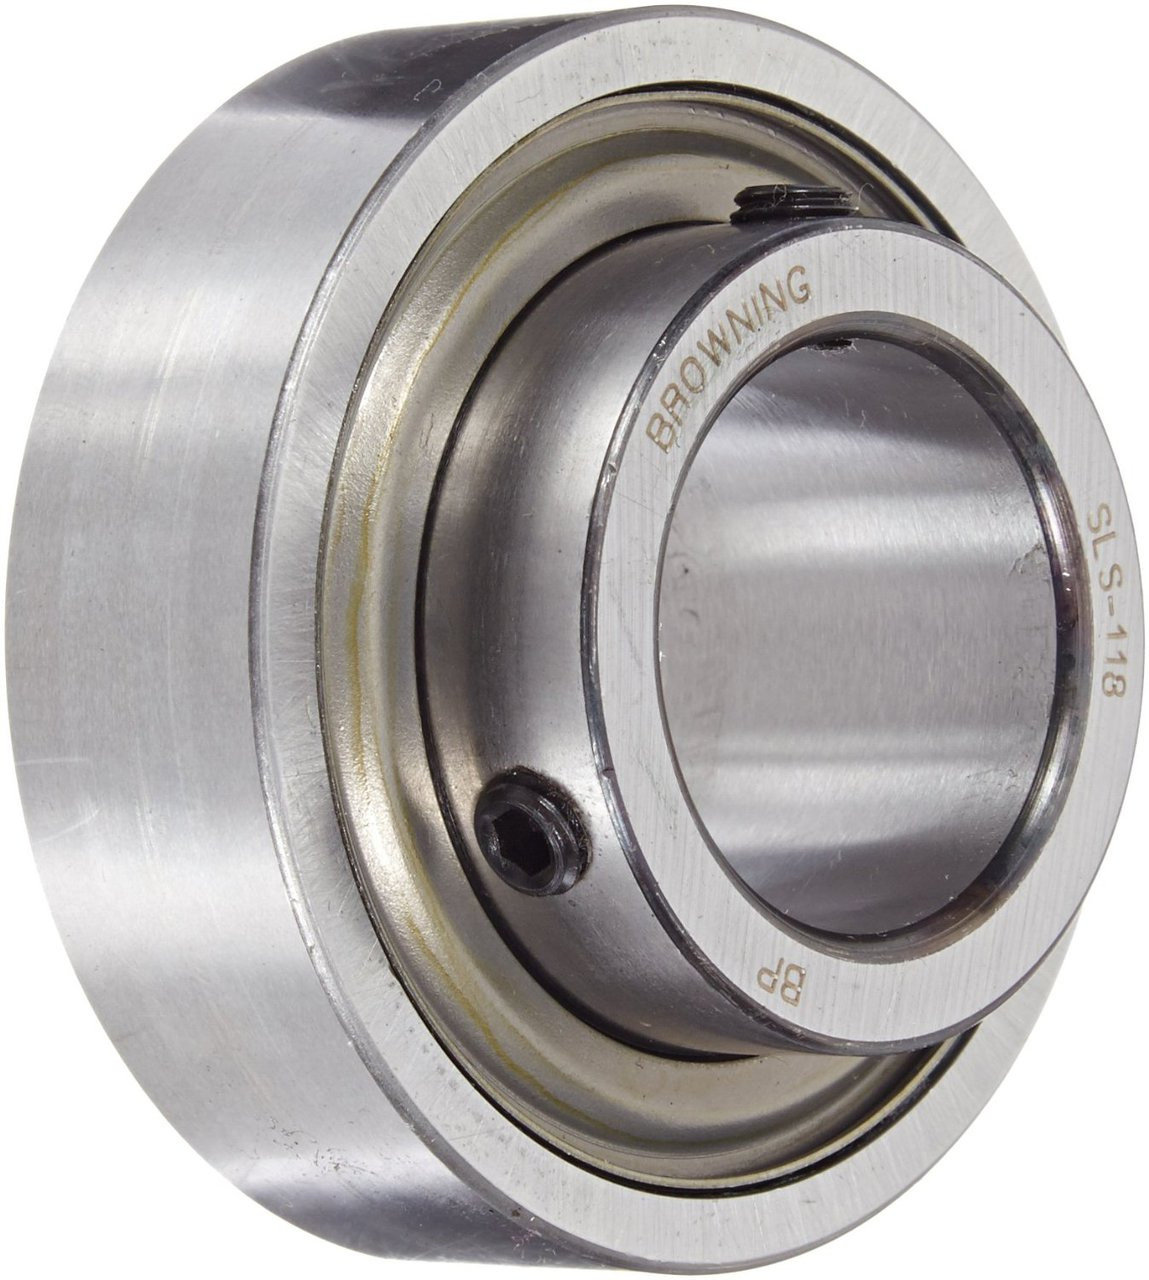 Bearing Machine Sls 110 Ball Bearing Insert